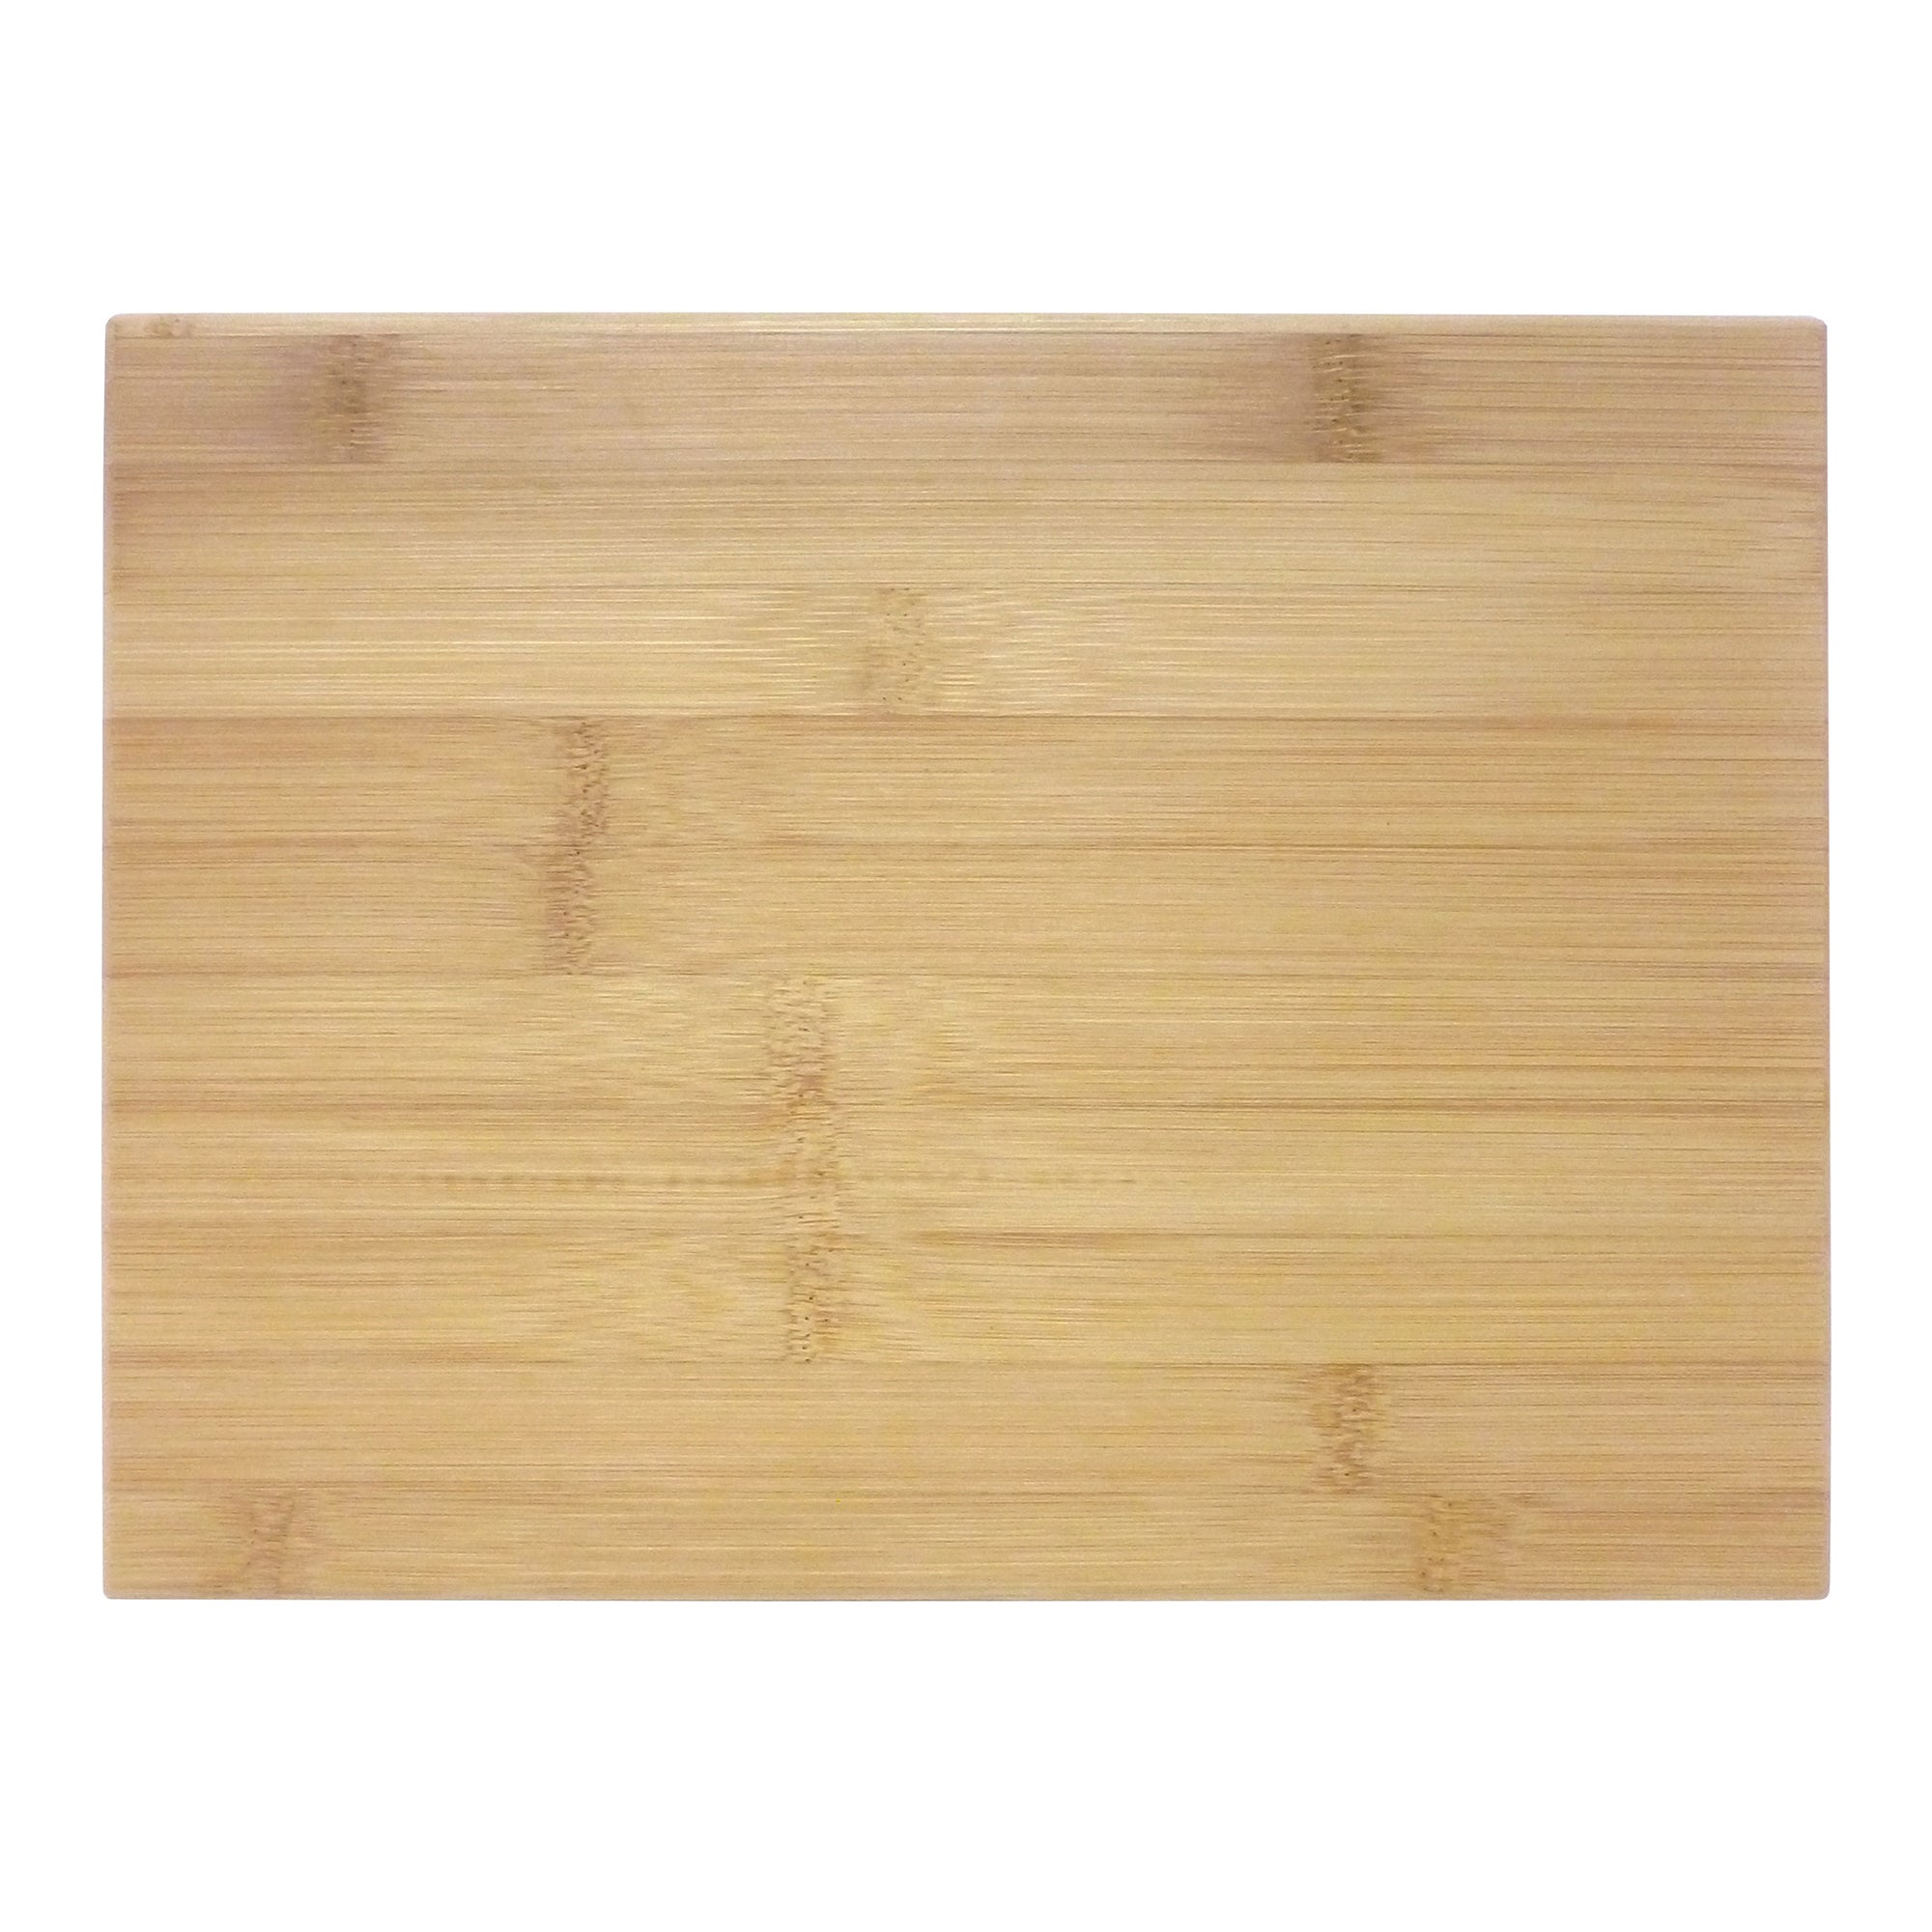 Set of 4 Wooden Placemats